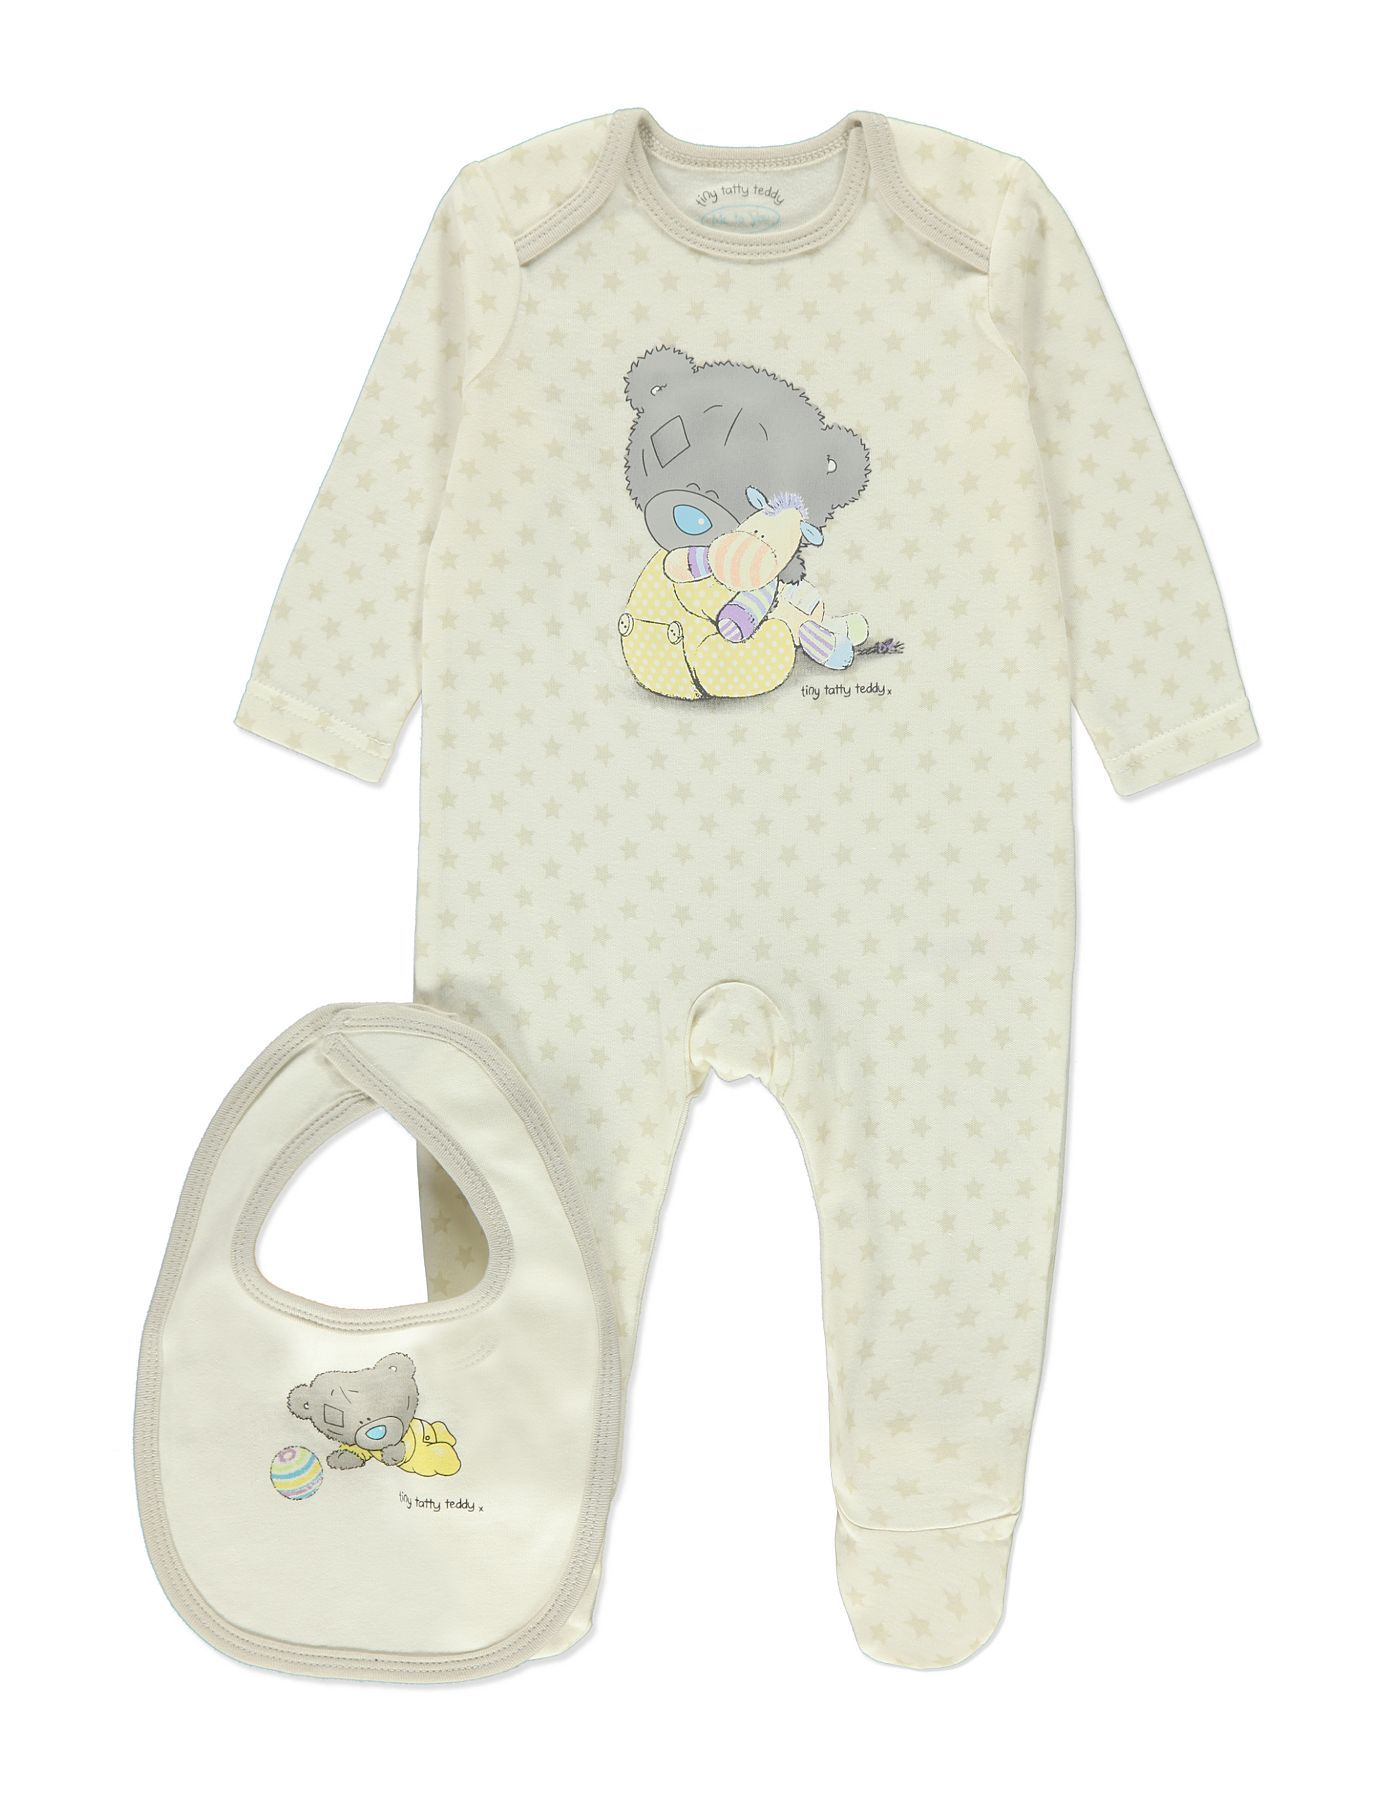 Unisex star tiny tatty teddy sleepsuit and bib set baby george unisex star tiny tatty teddy sleepsuit and bib set baby george at asda negle Choice Image